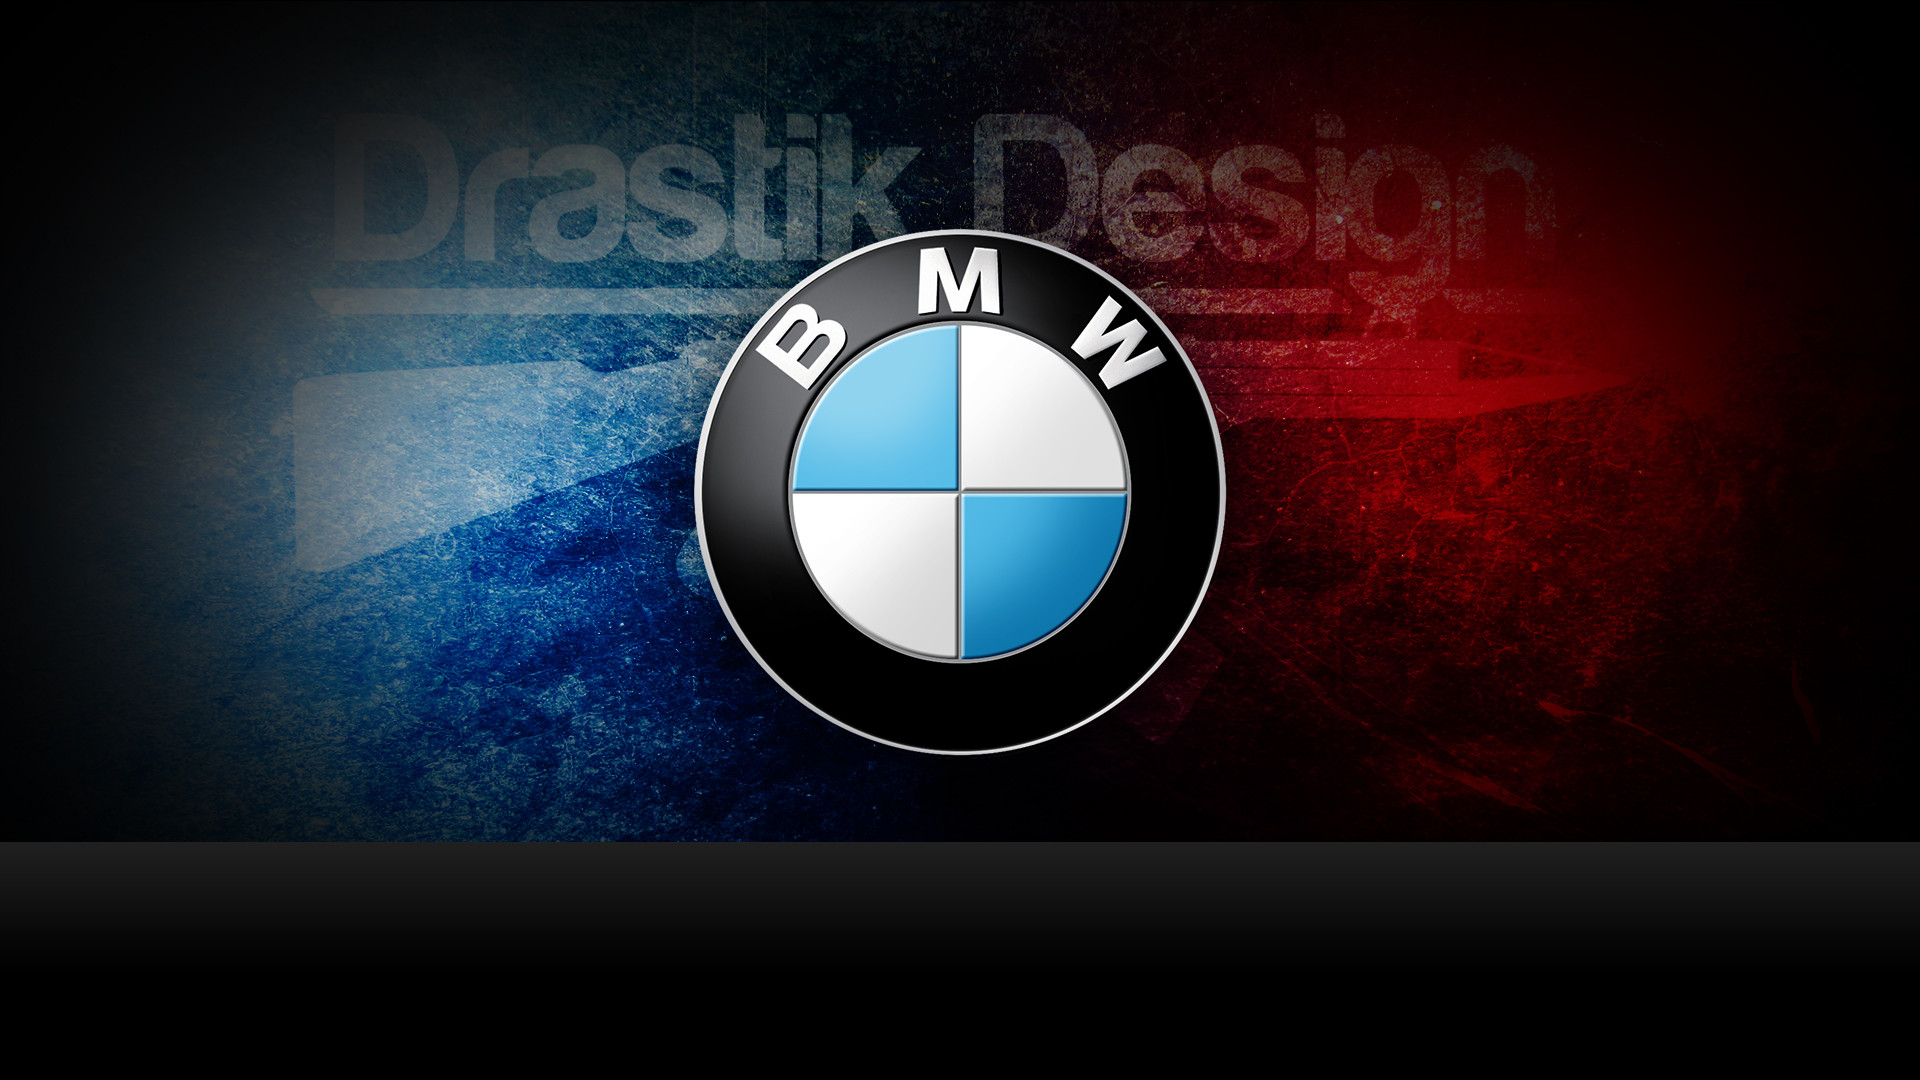 Res: 1920x1080, BMW images